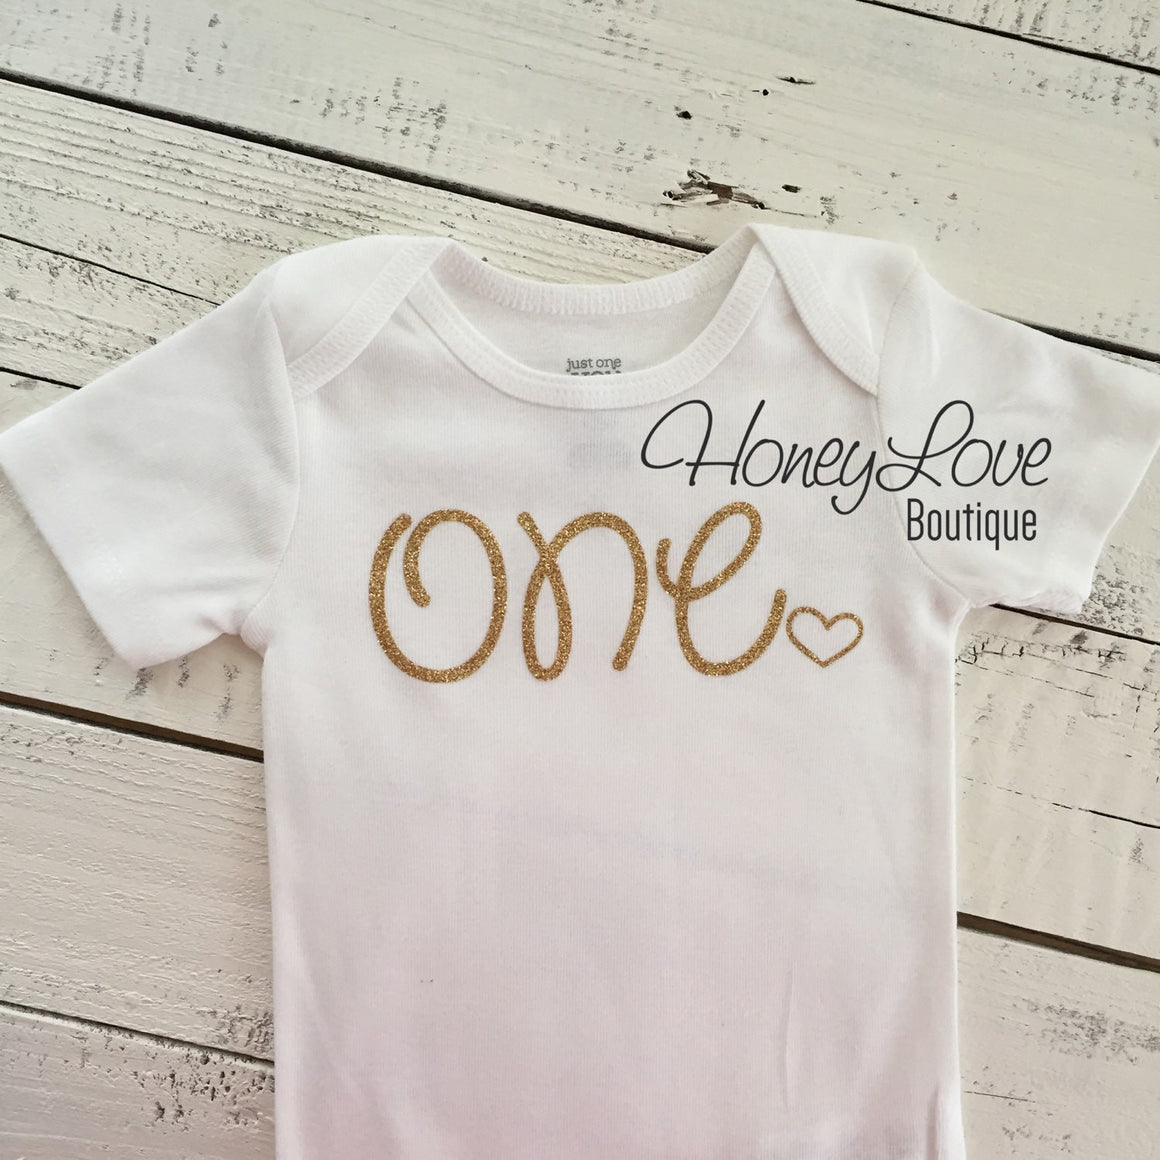 One - SILVER or GOLD glitter bodysuit with heart - HoneyLoveBoutique